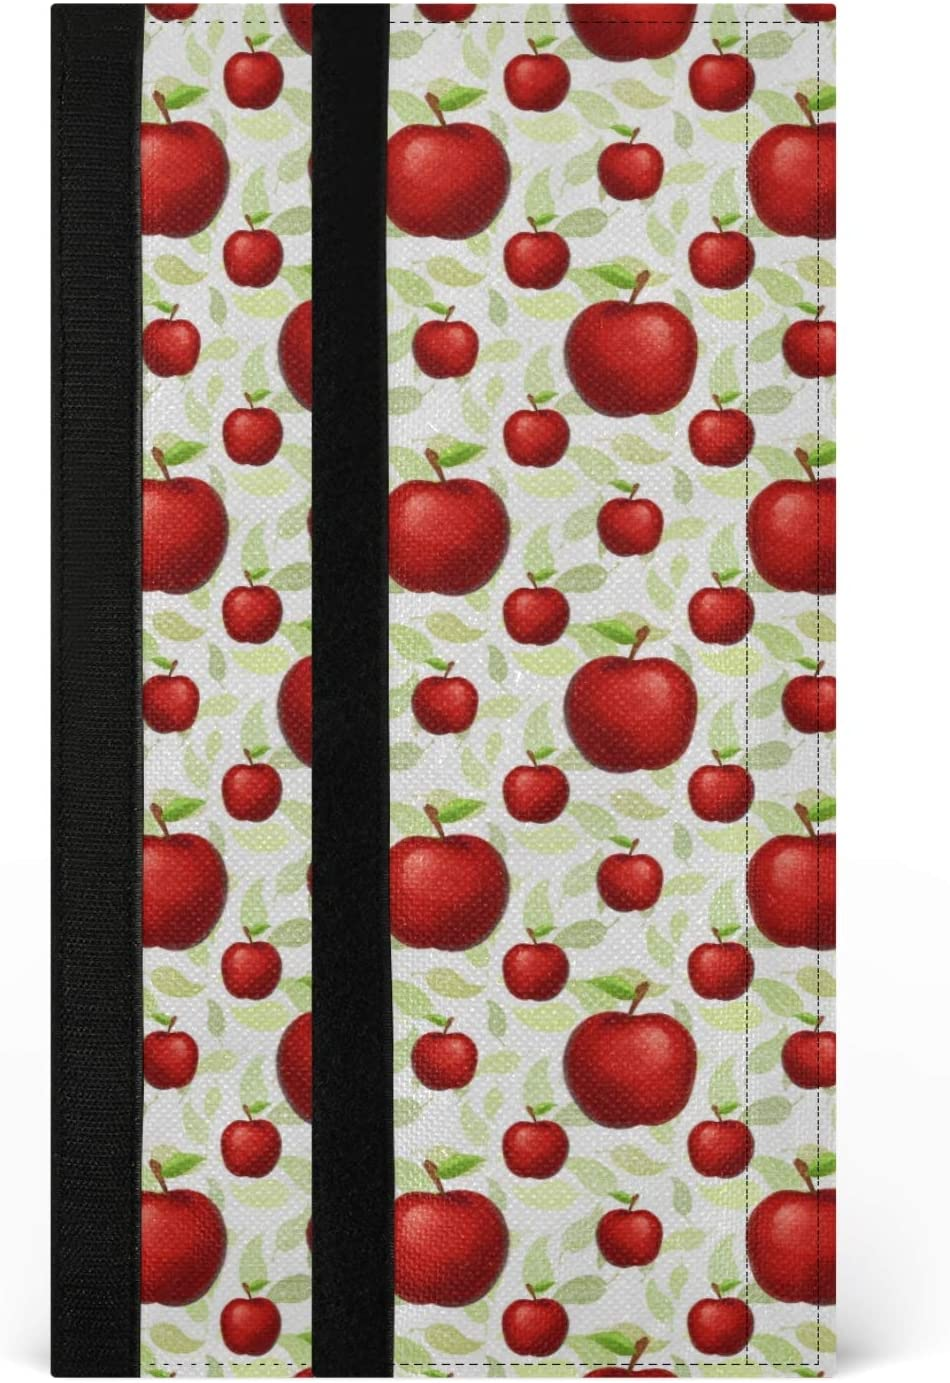 Apples Refrigerator Door Handles Covers 2 Piece Washable Protective Covers for Electrical Kitchen Keep Kitchen Appliance Clean from Smudges, Drips, Food Stains, Oil